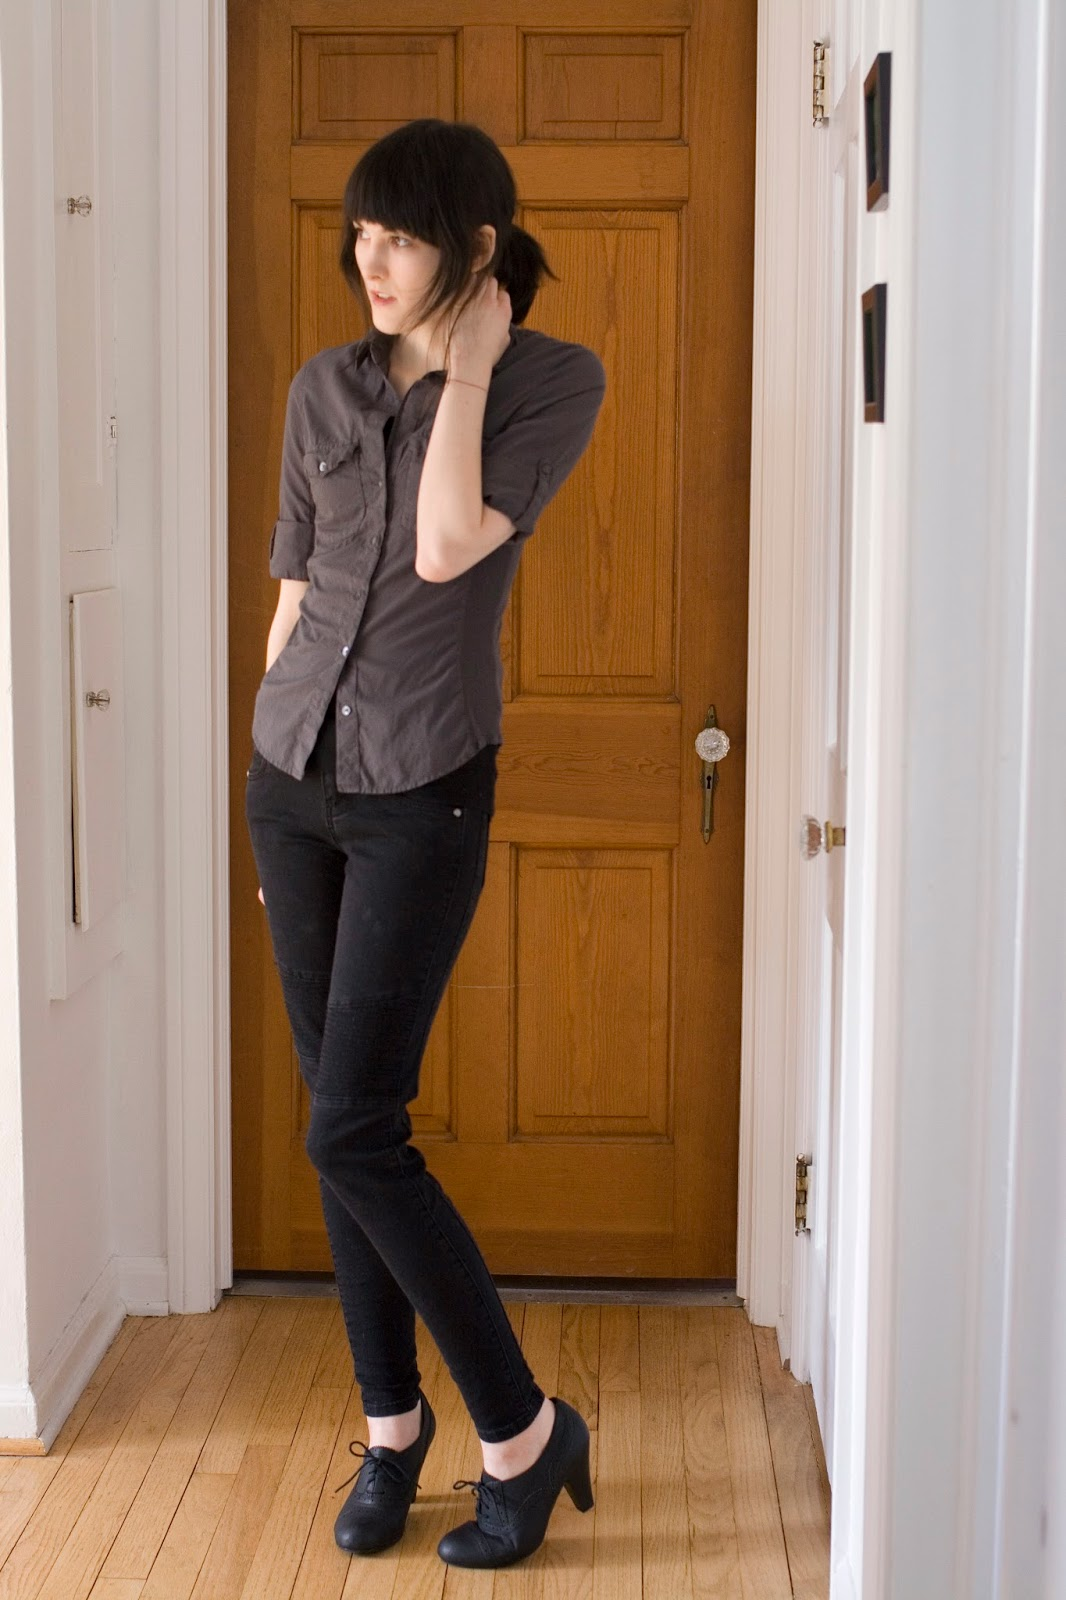 Bombasine : OOTD: Feb 23. James Perse shirt, black skinnies, Guess spectator heels